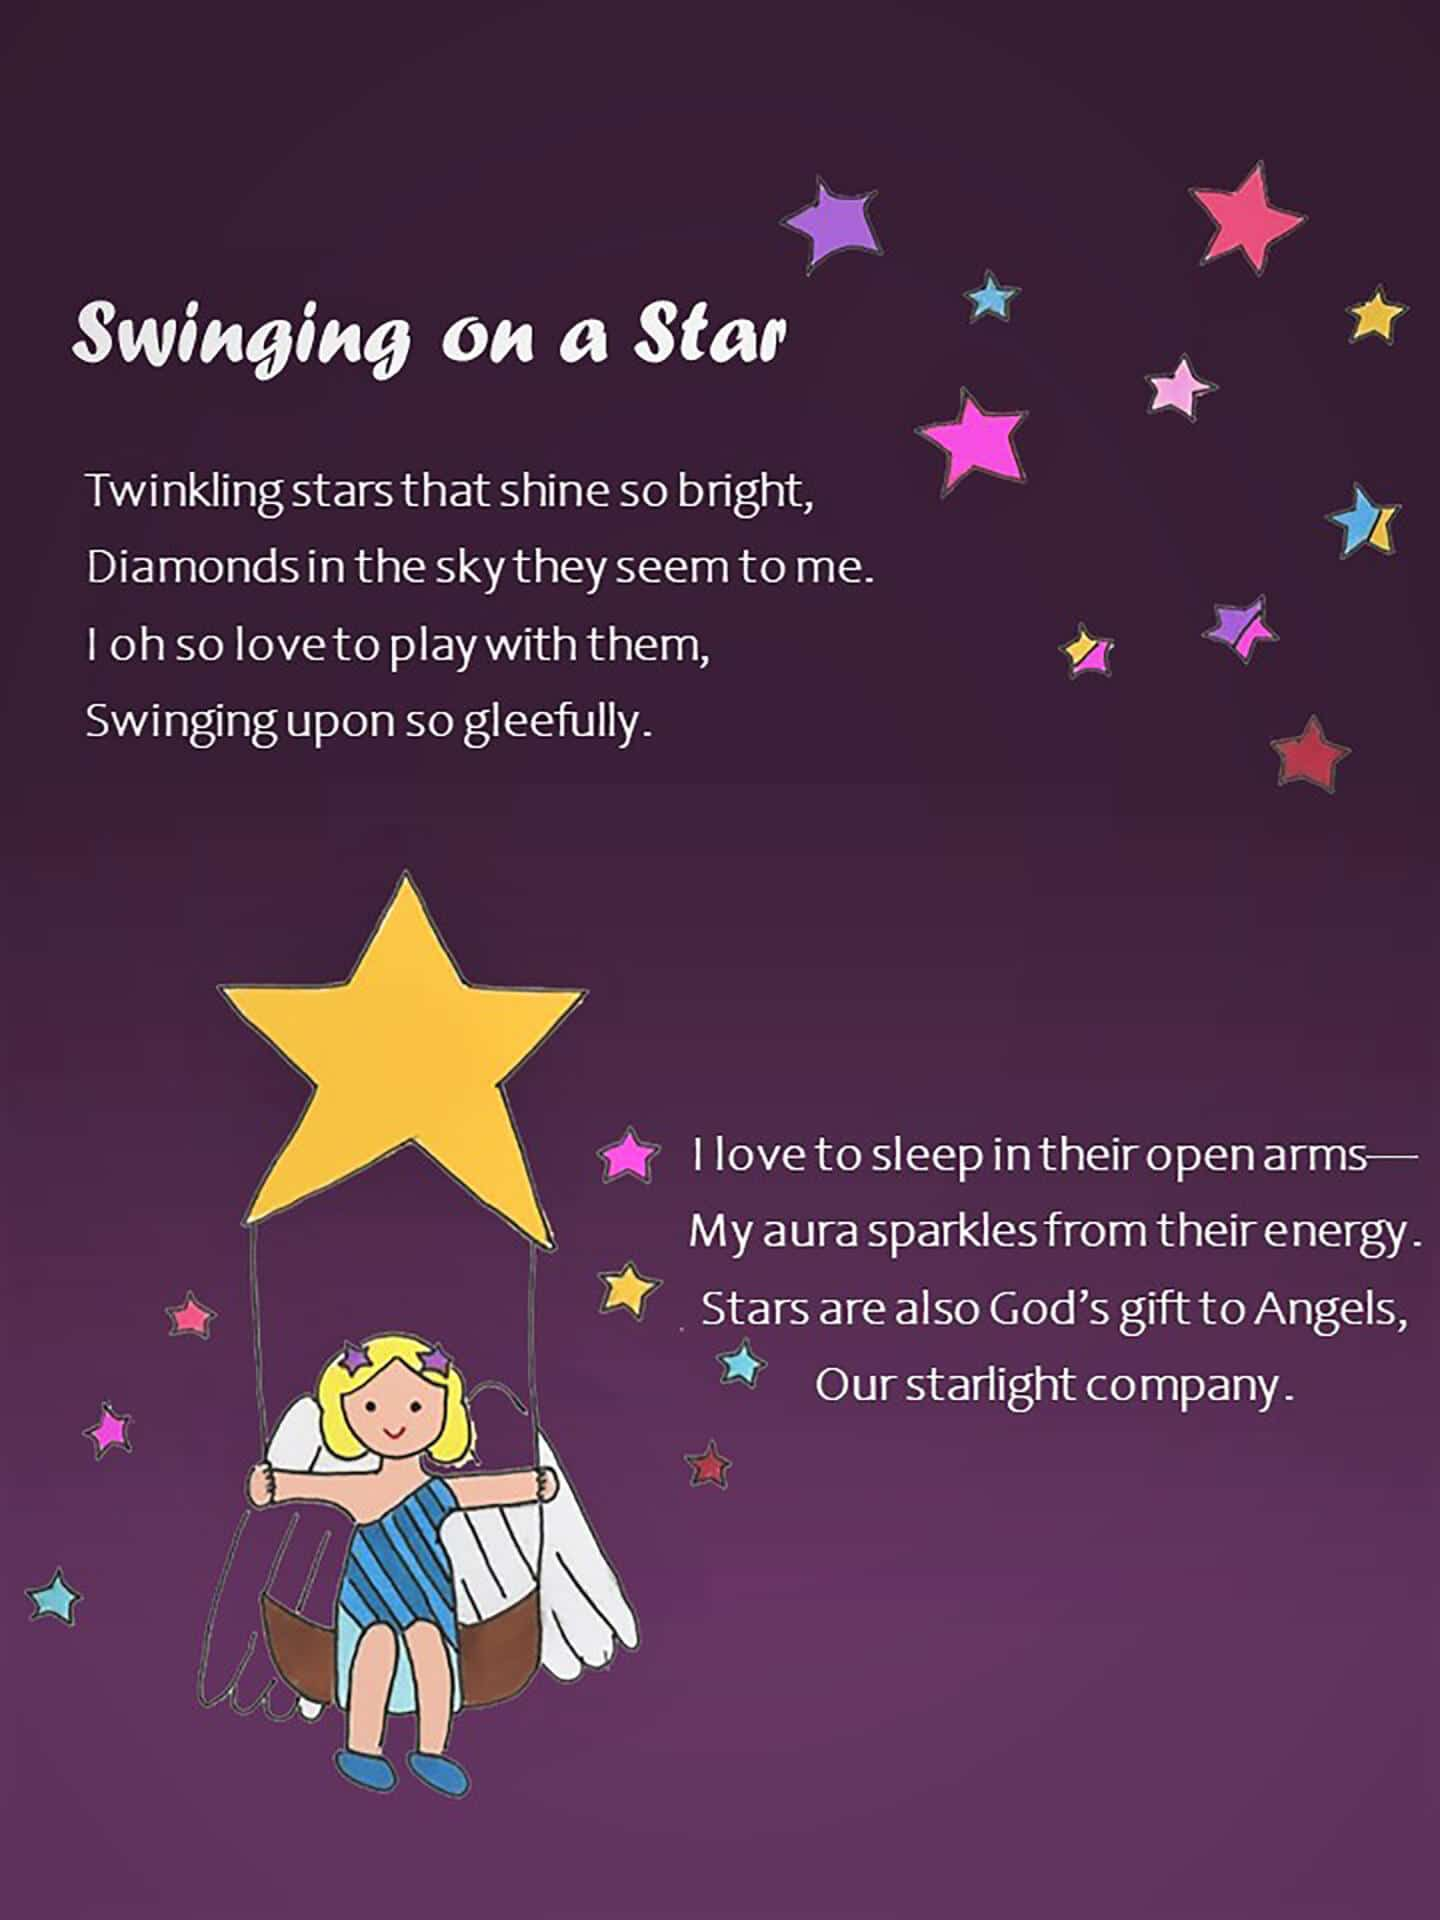 Swinging On a Star eCard